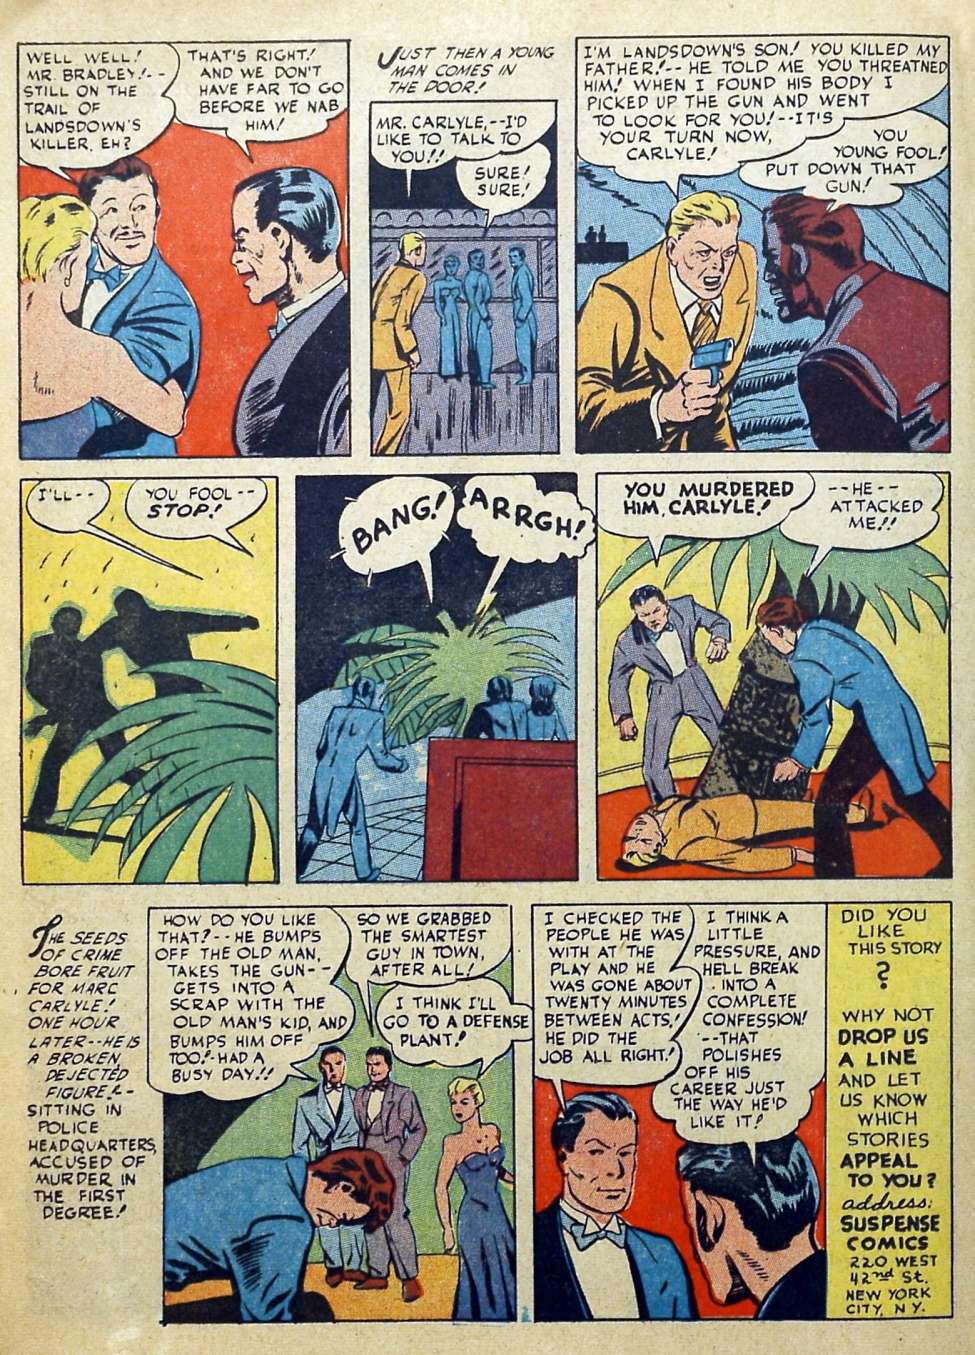 Suspense Comics #3 from 1944 22